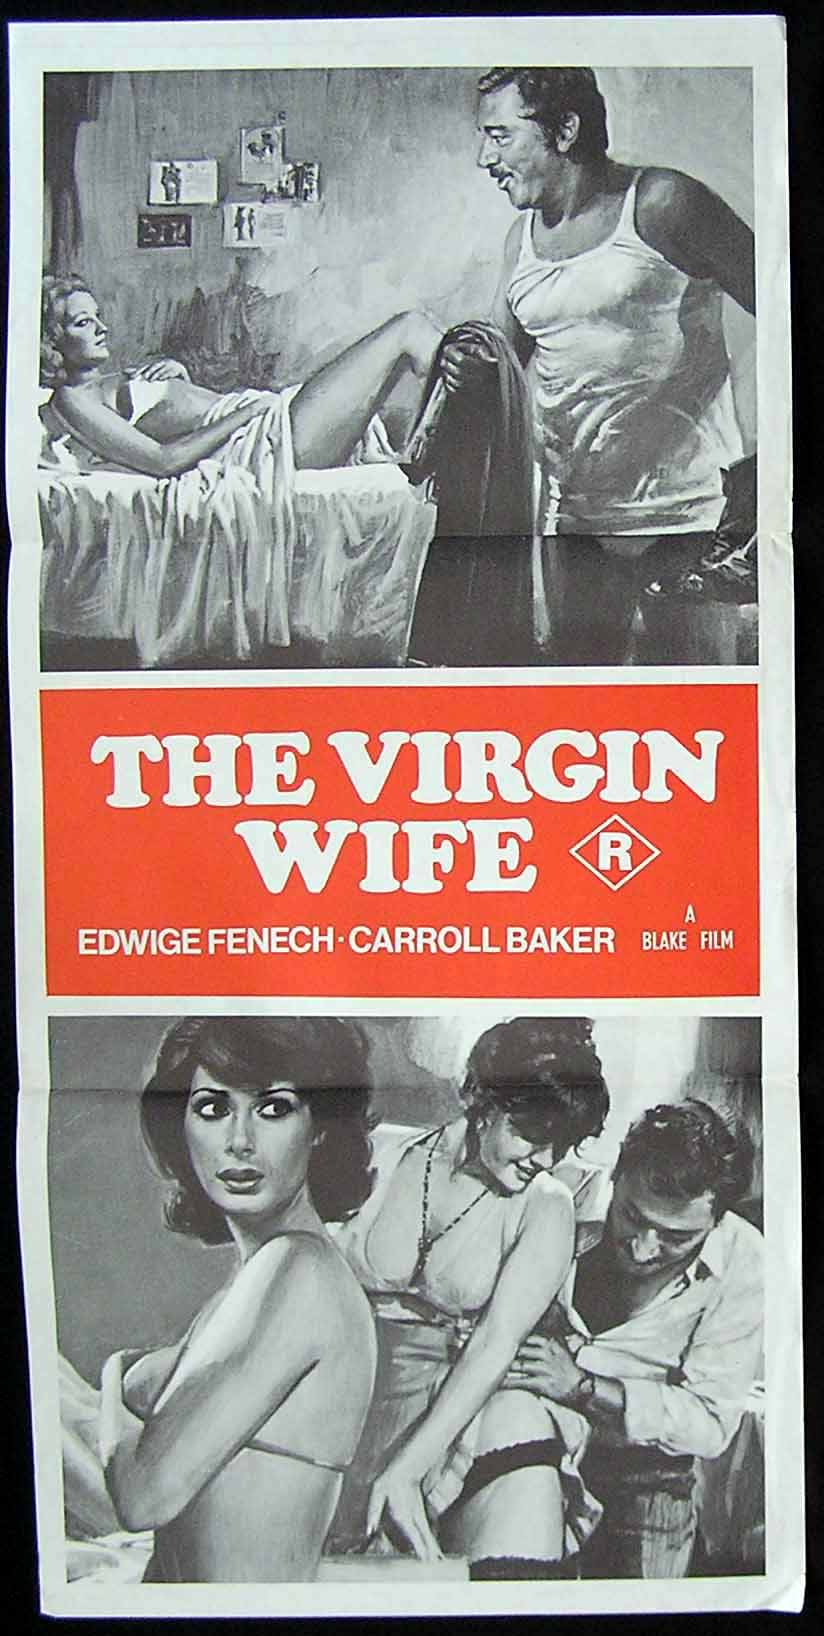 THE VIRGIN WIFE '75-Carroll Baker-Sexploitation Movie Poster